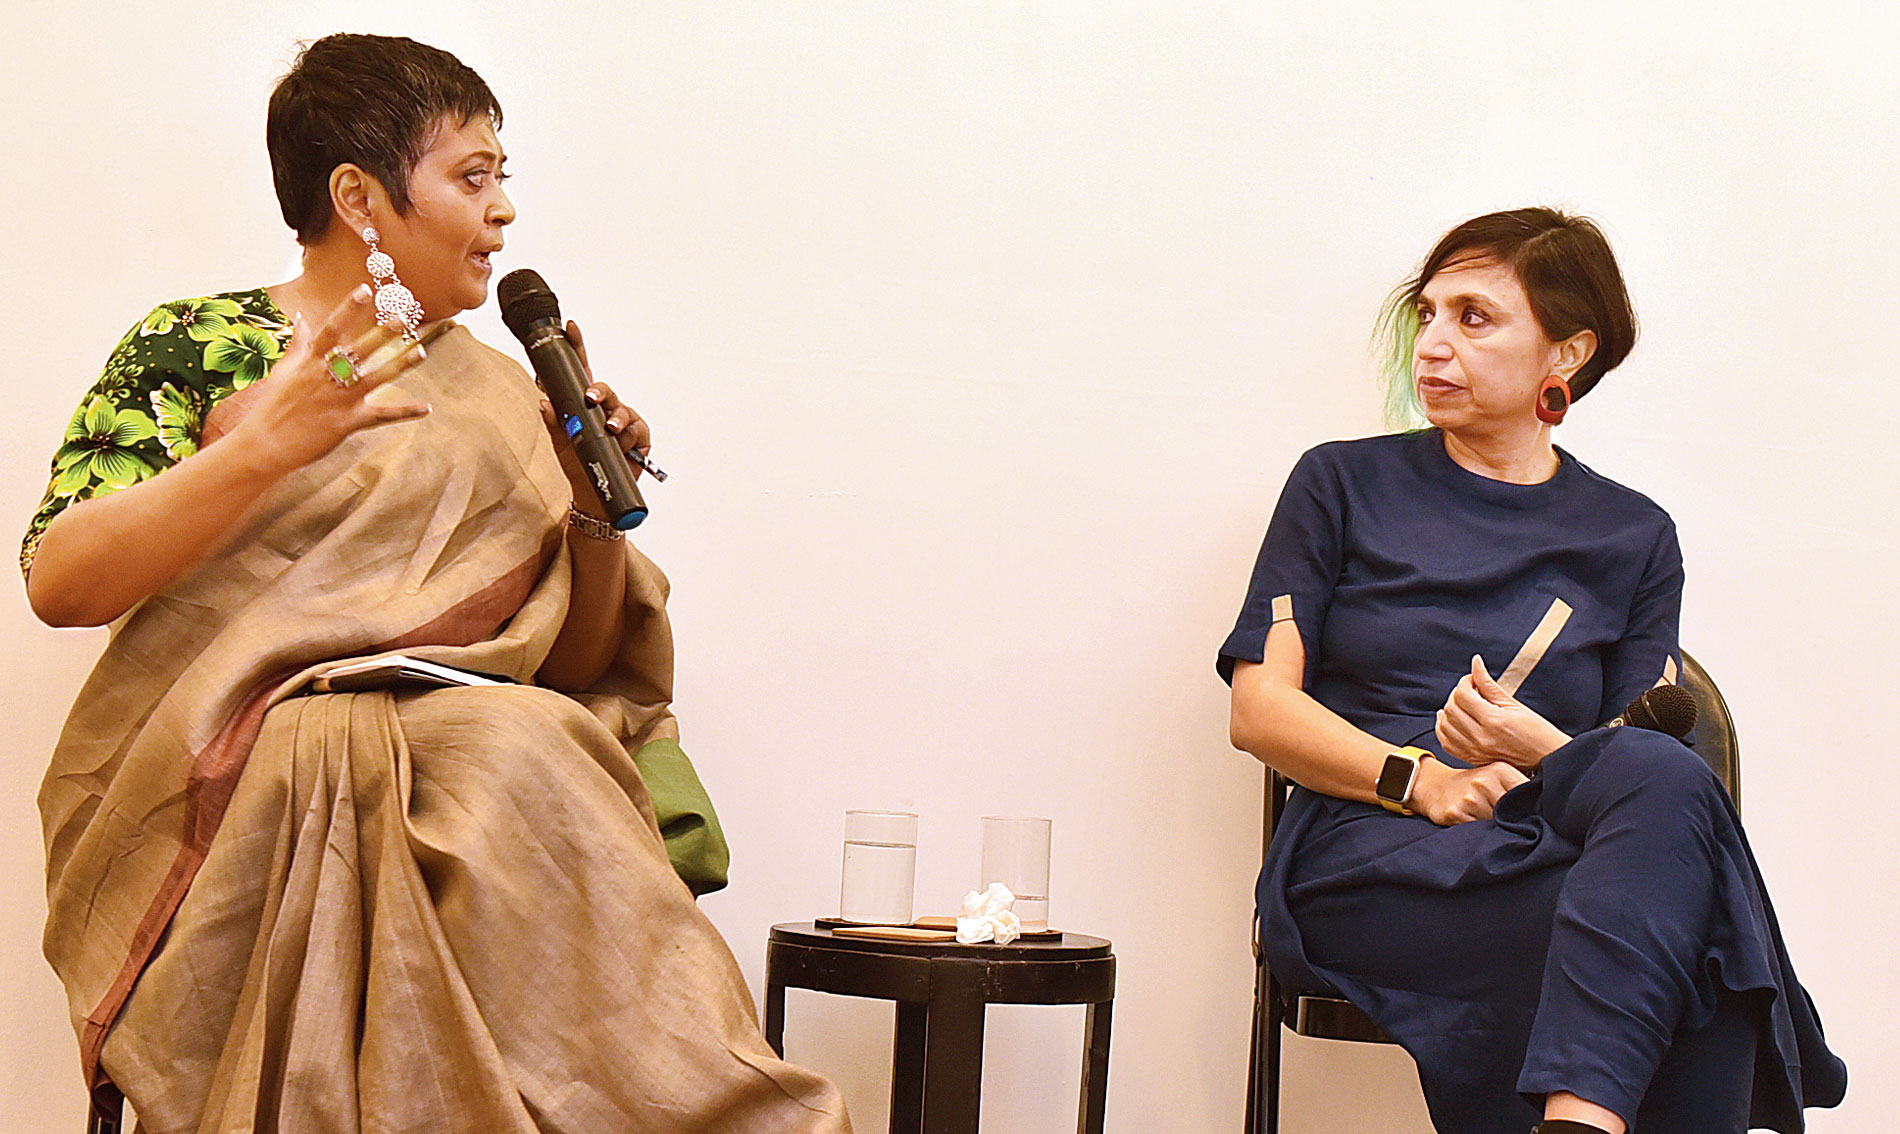 Shonali Bose (right) in conversation with Ratnaboli Ray at Experimenter